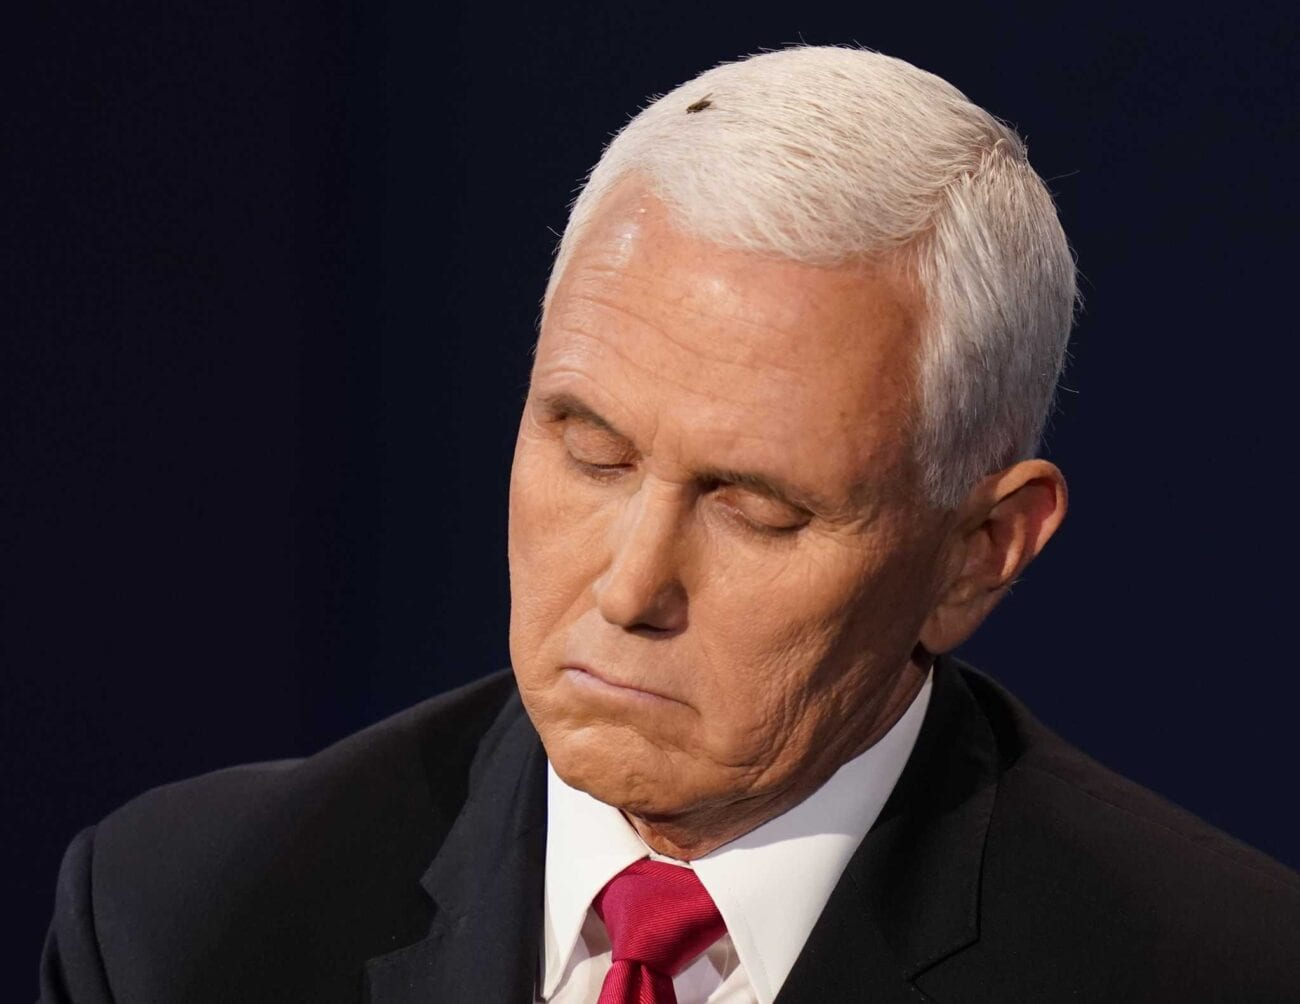 America agrees the fly on Mike Pence won the debate last night. Check out the funniest memes buzzing around the internet about it.